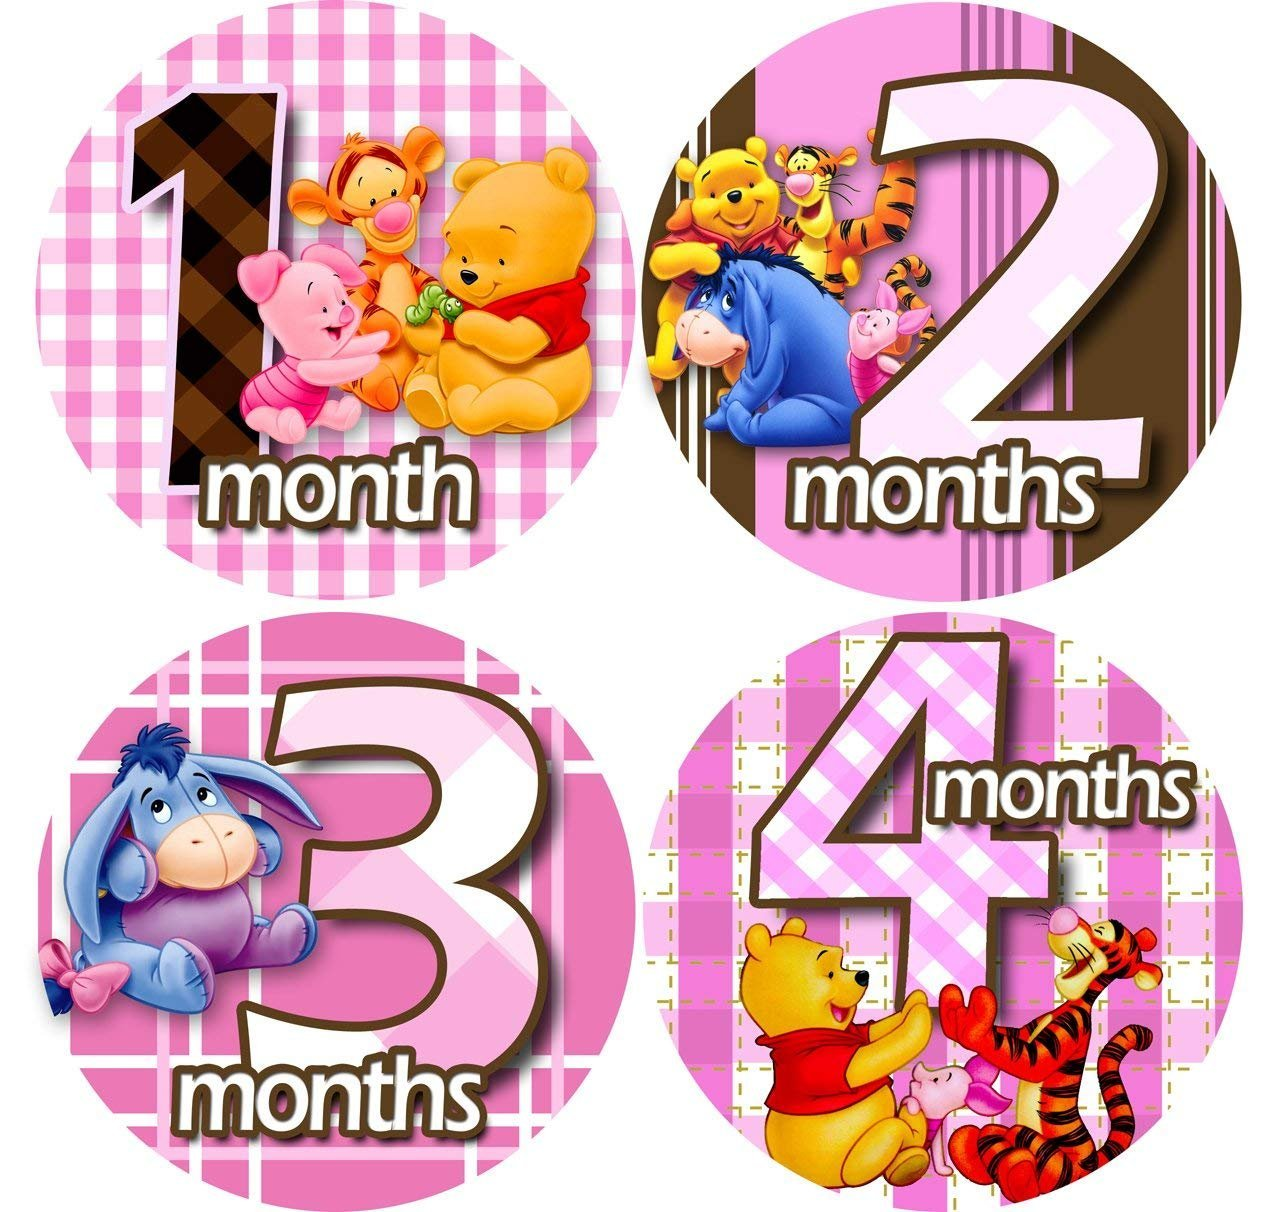 PINK WINNIE POOH 1-12 Month Baby Monthly One Piece Stickers Baby Shower Gift Photo Shower Stickers … EasySells